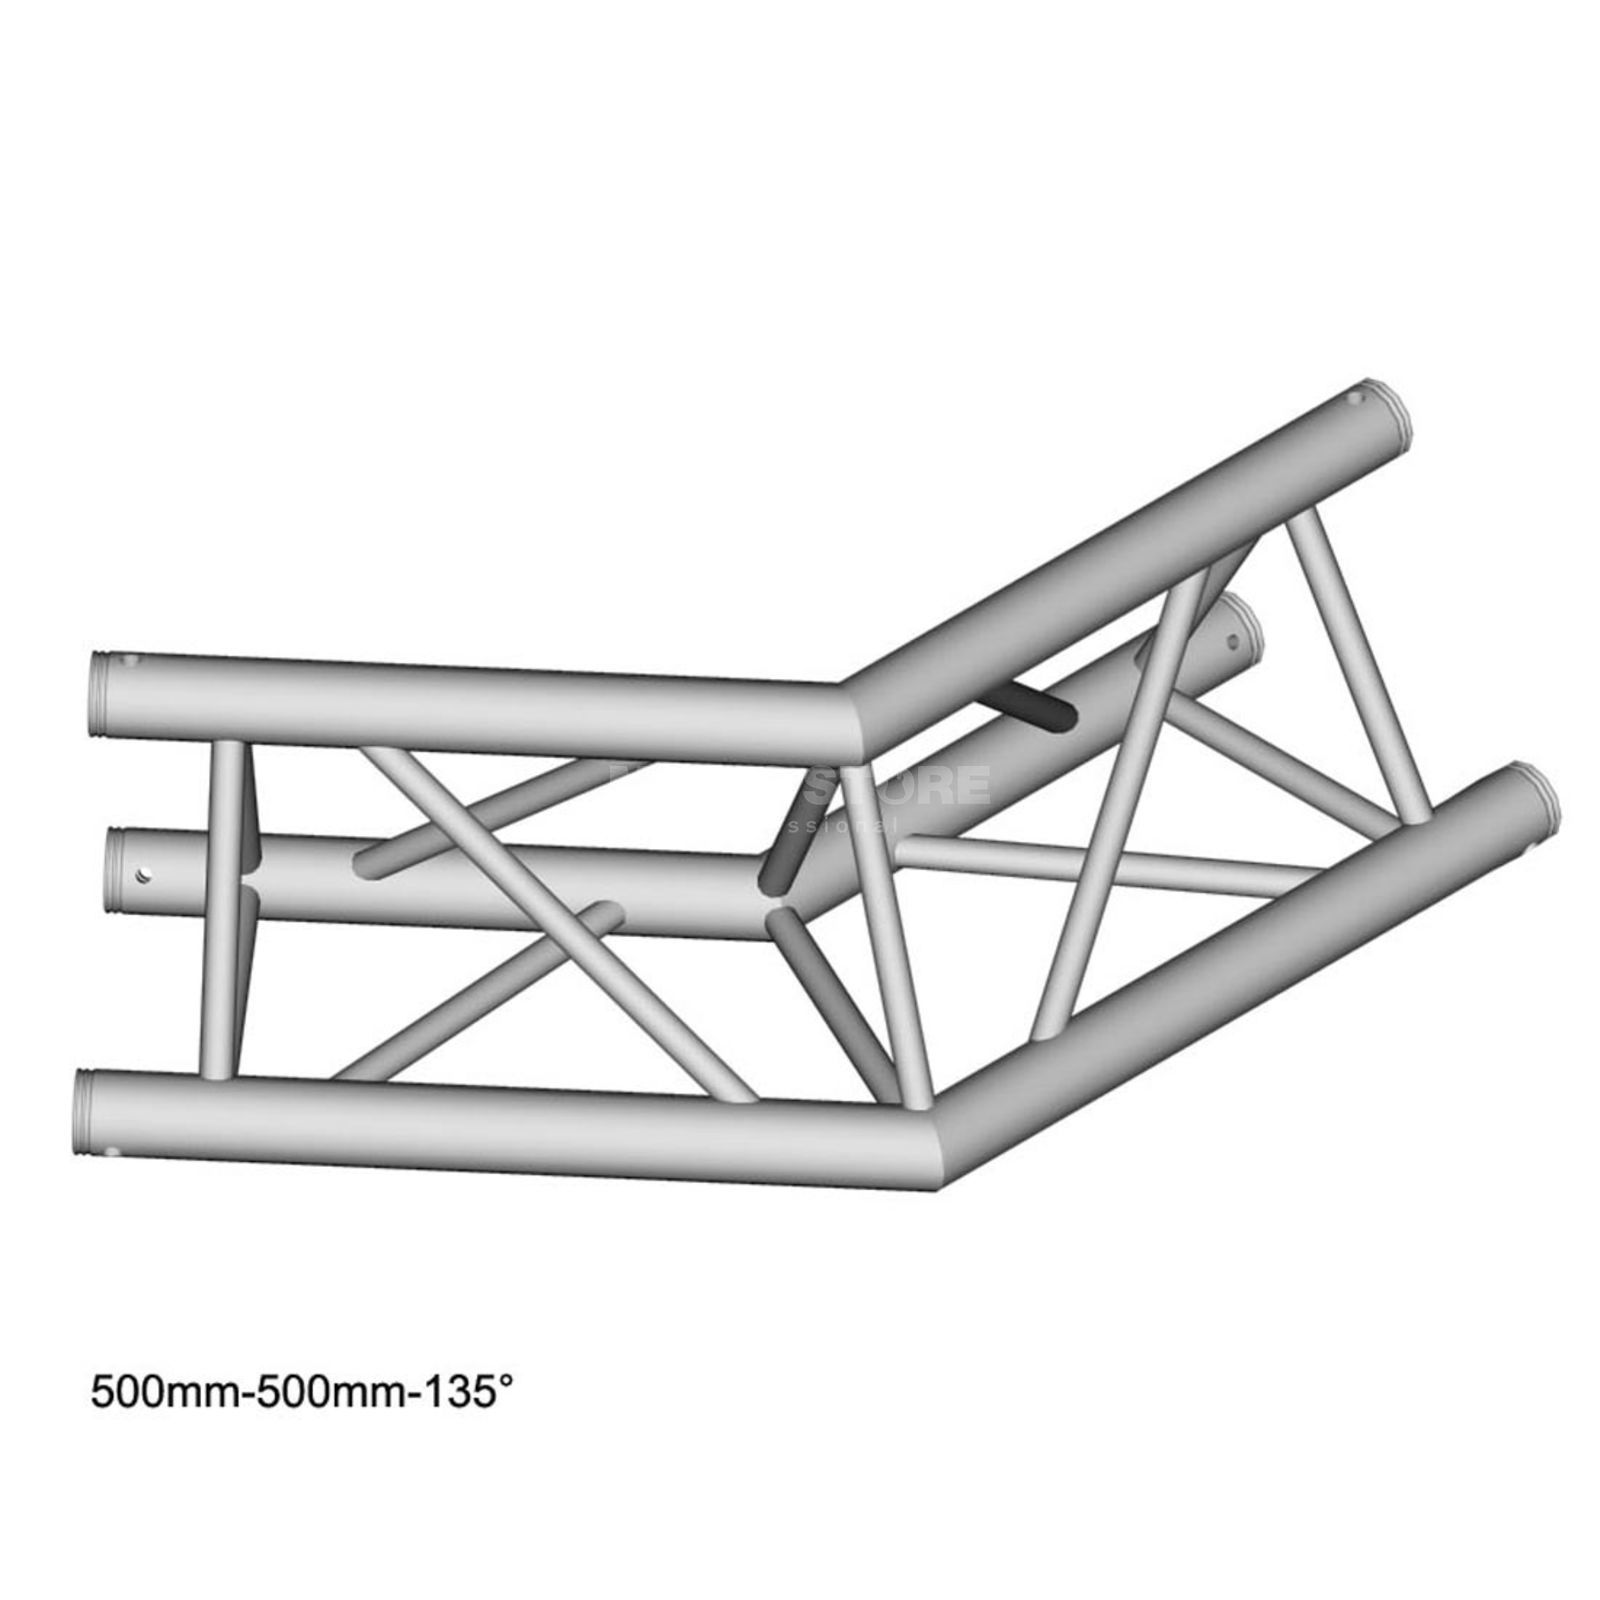 DURATRUSS DT 33-C23-L135, 3-Point Truss 135° Corner, 2-Way Produktbillede